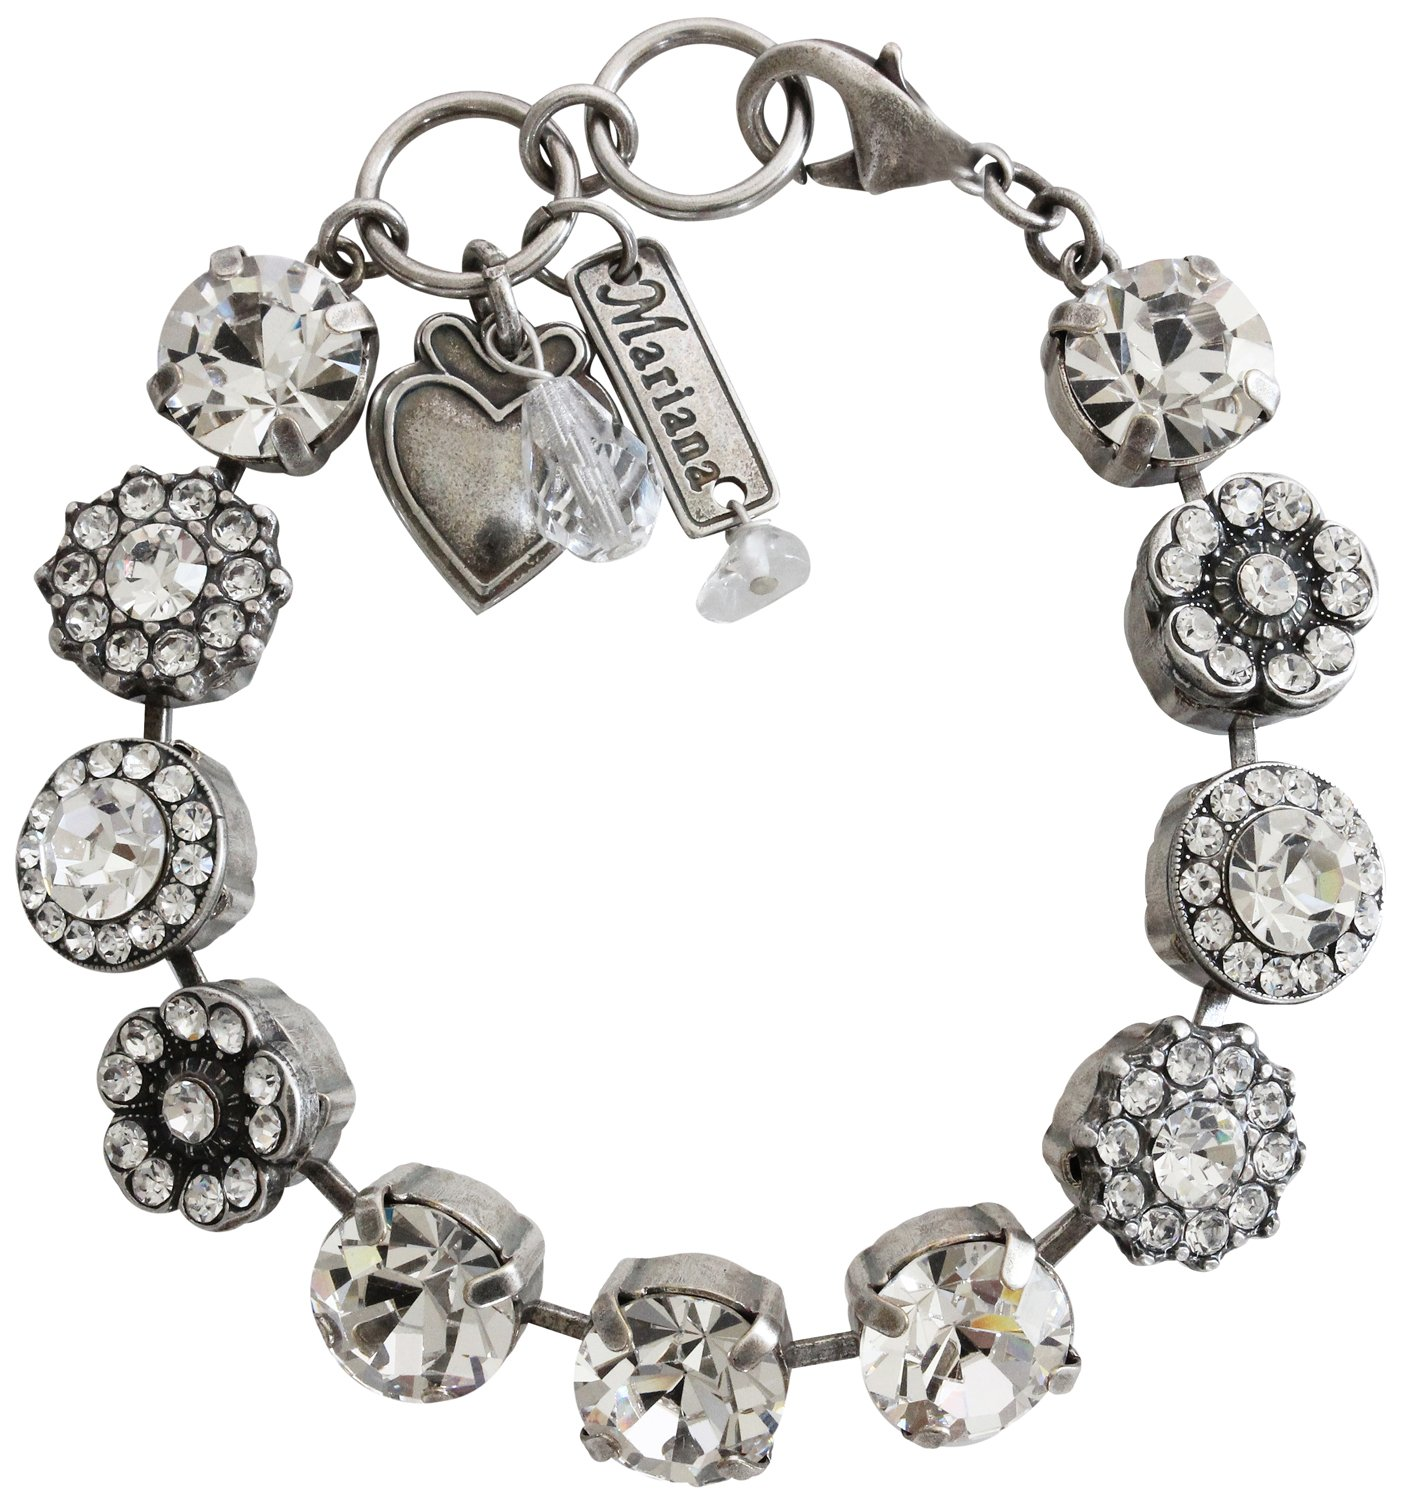 Mariana Silvertone Large Flower Shapes Crystal Bracelet, 7'' ''On A Clear Day'' 4084 001001